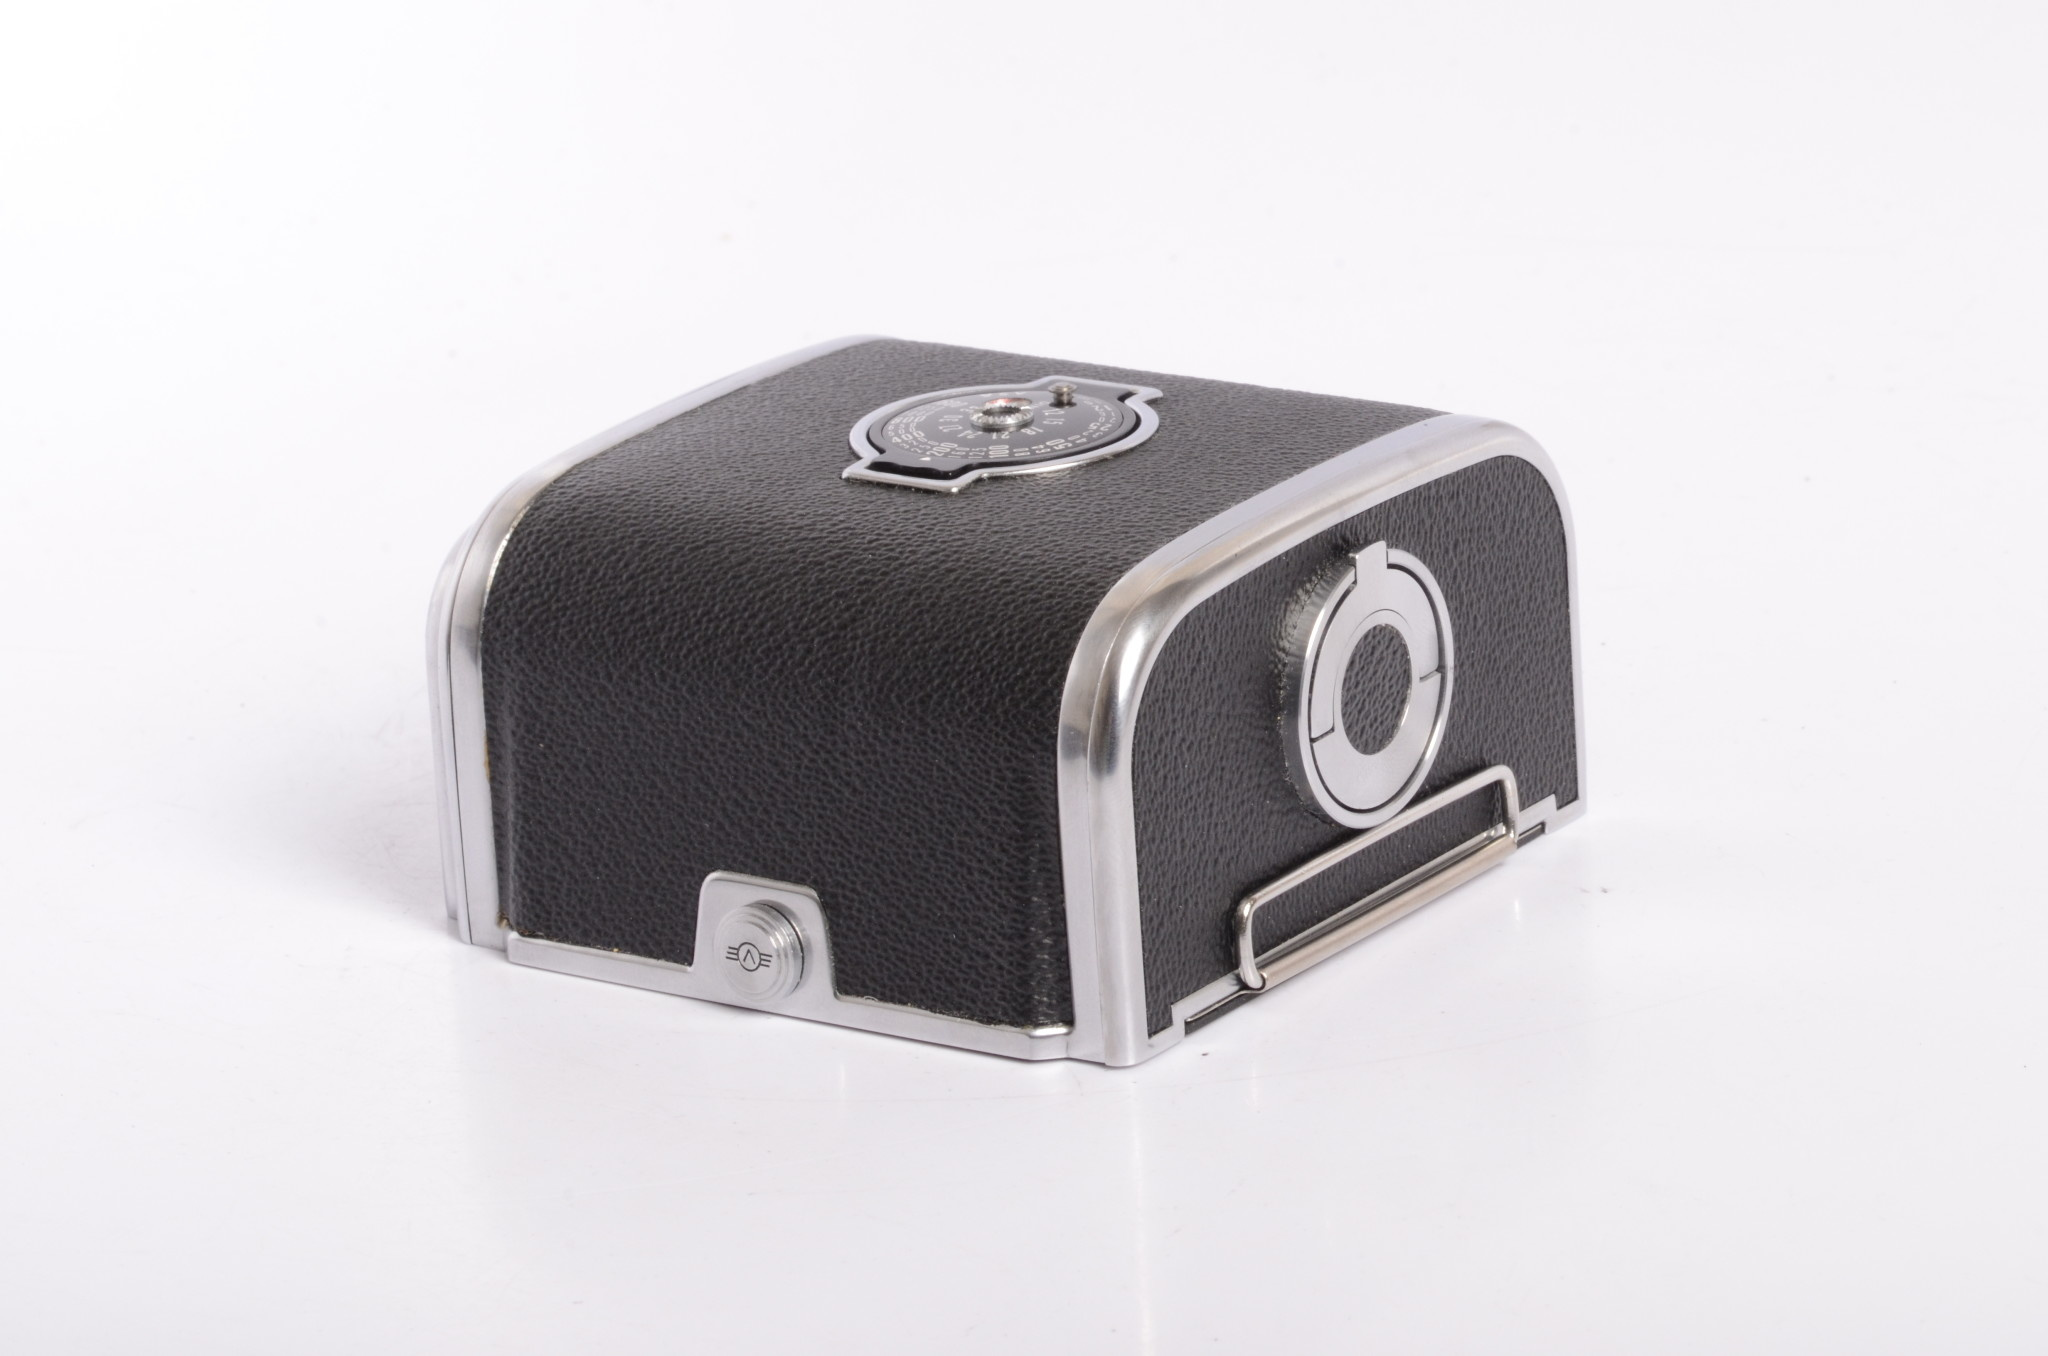 Hasselblad Hasselblad A16 120 Film Back